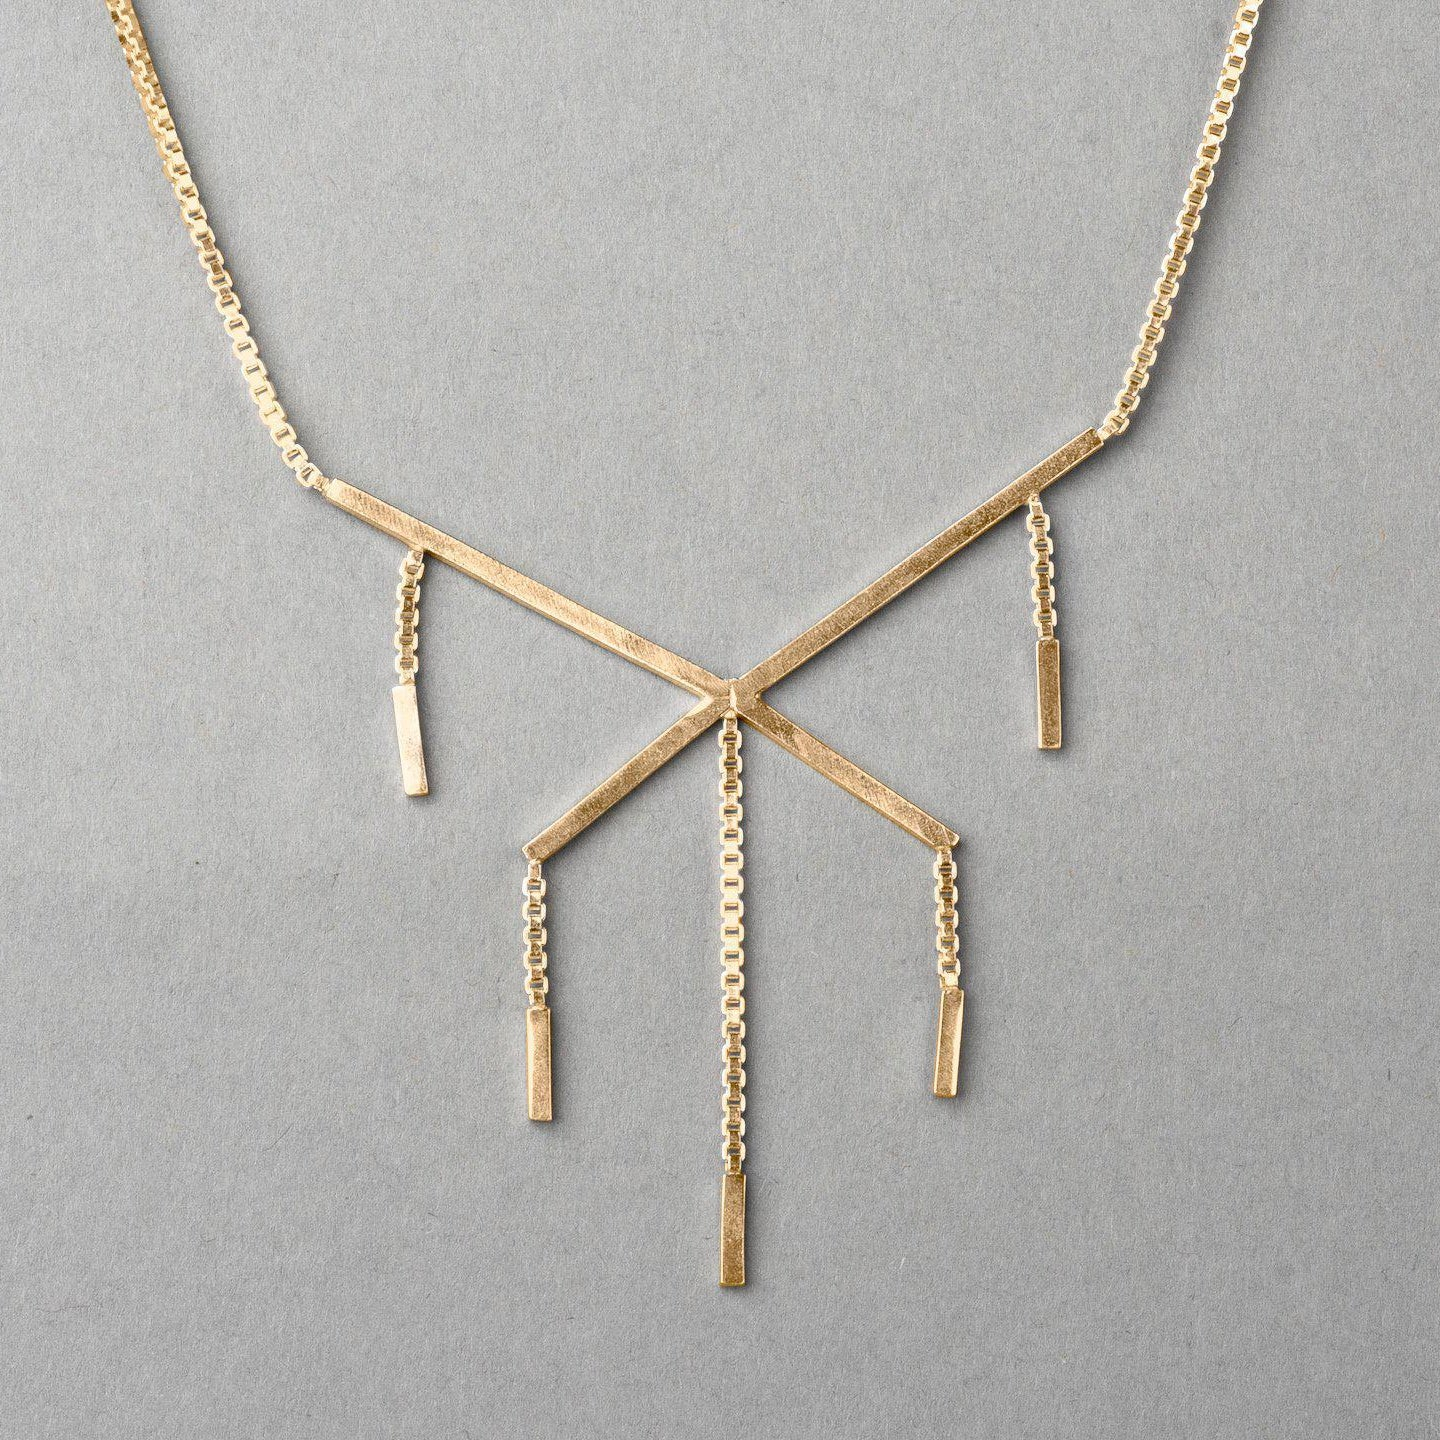 SHOAL CREEK NECKLACE